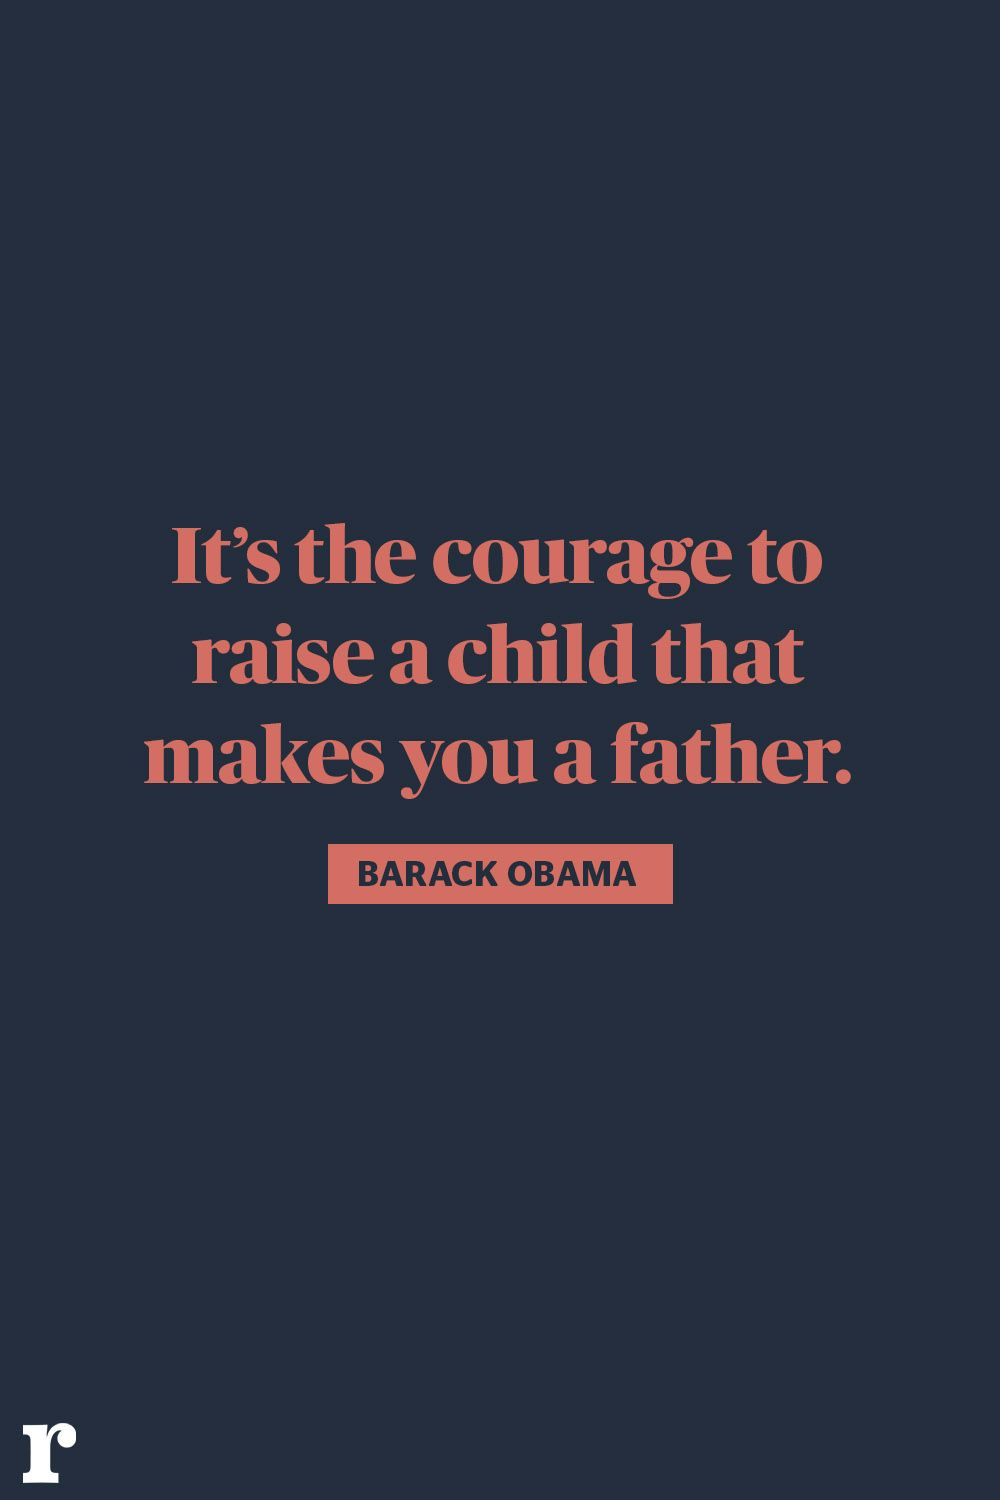 15 Best Fathers Day Quotes To Share With Dad Meaningful